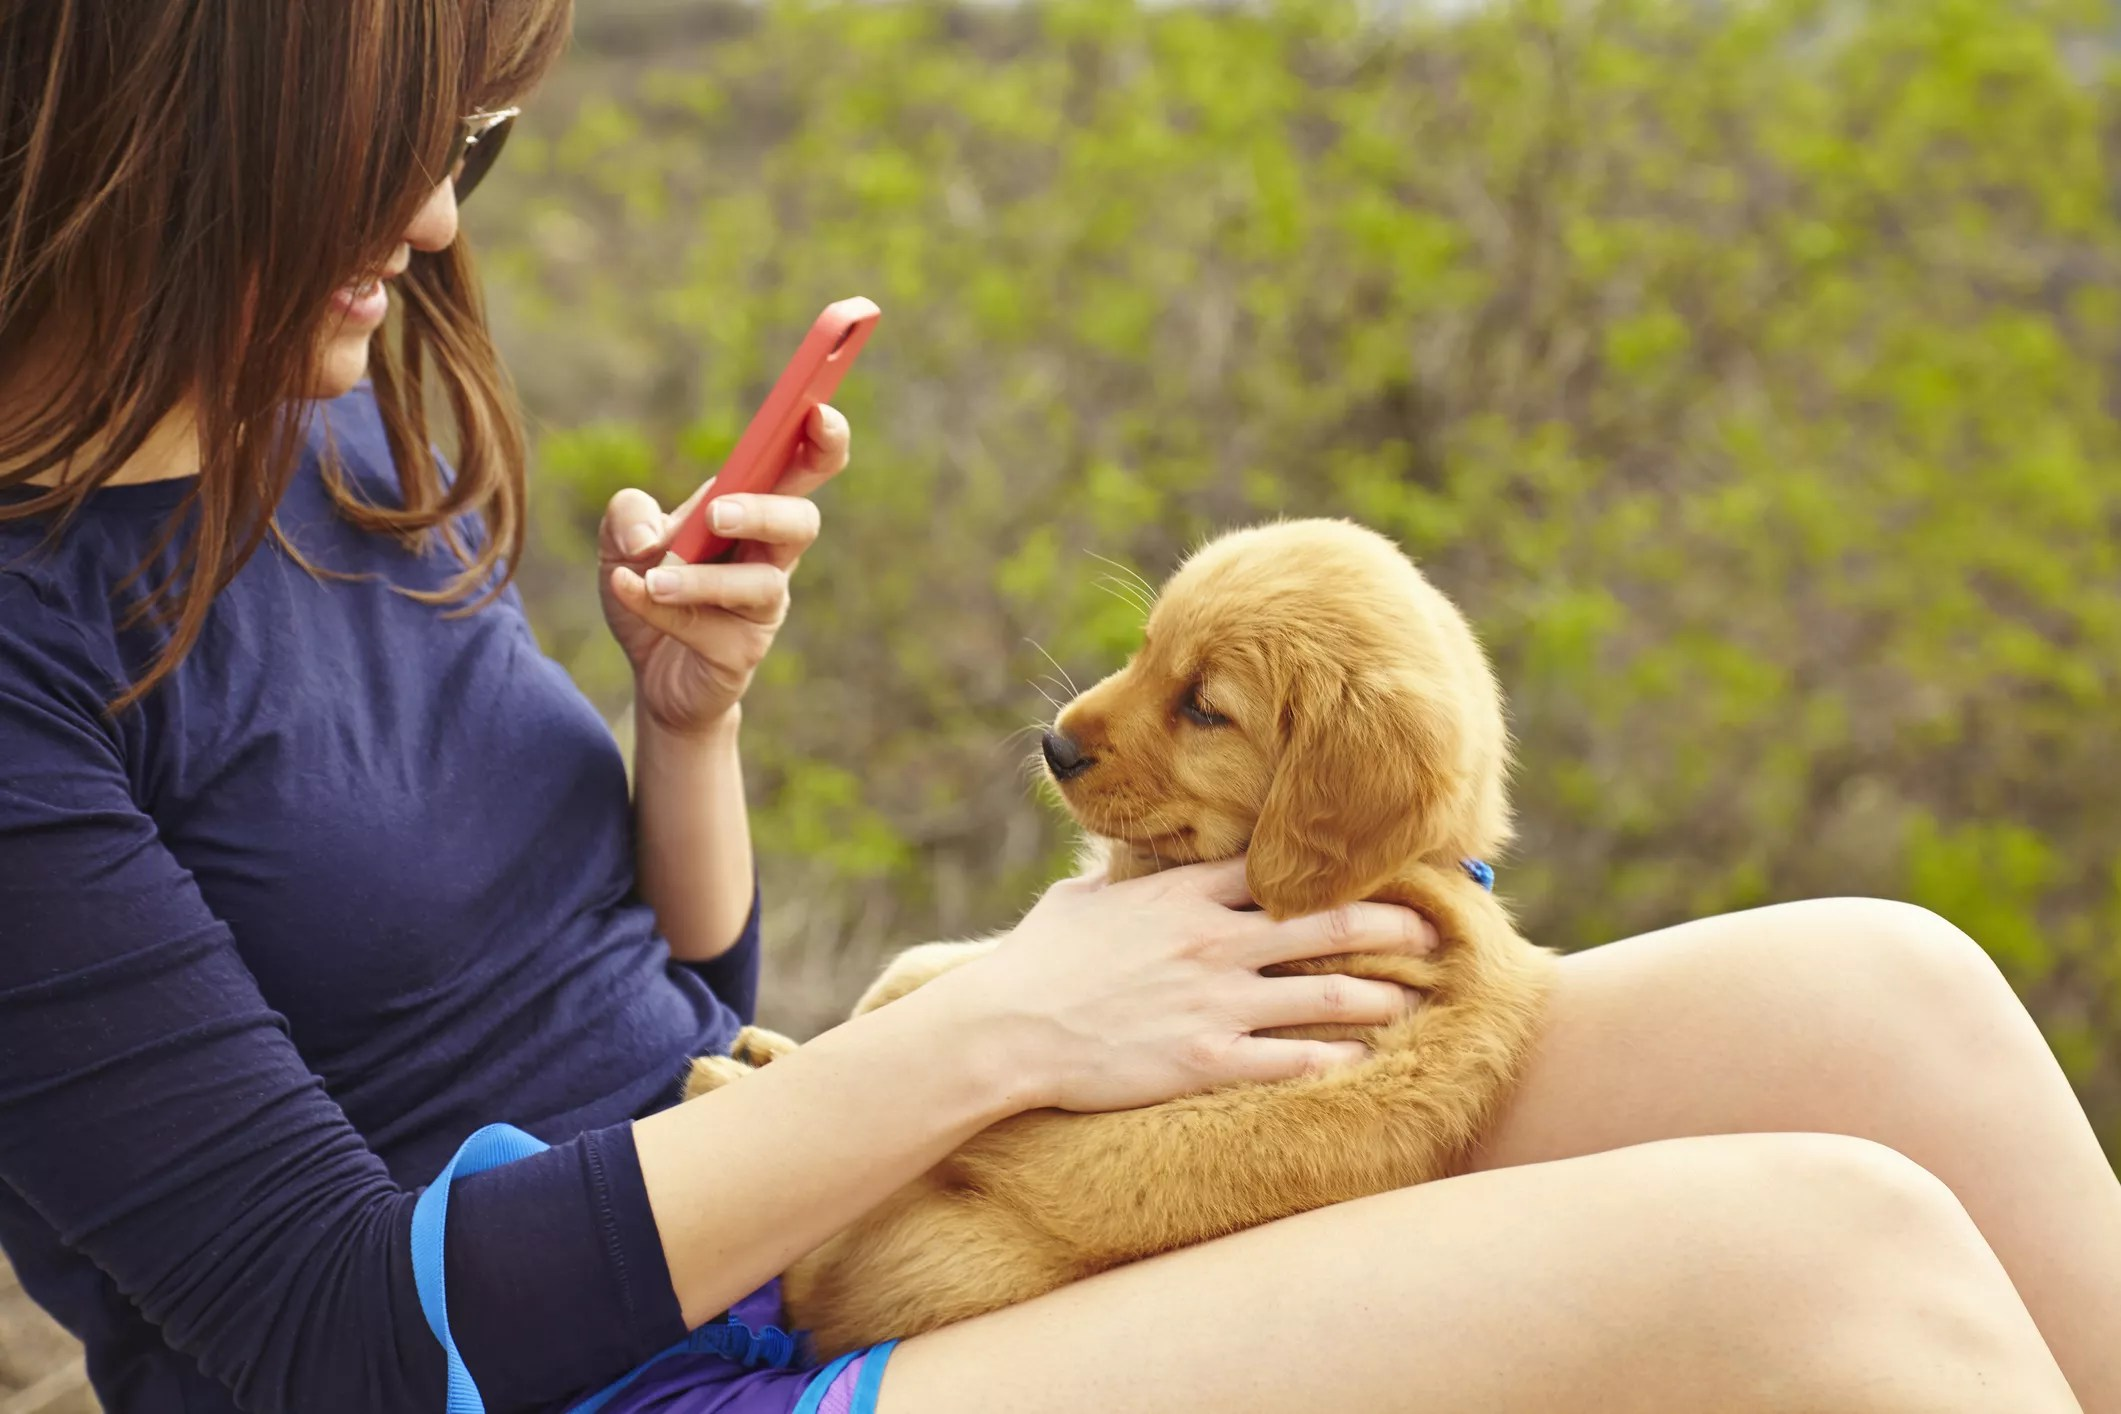 An image of a woman taking a photo of a puppy with her smartphone.